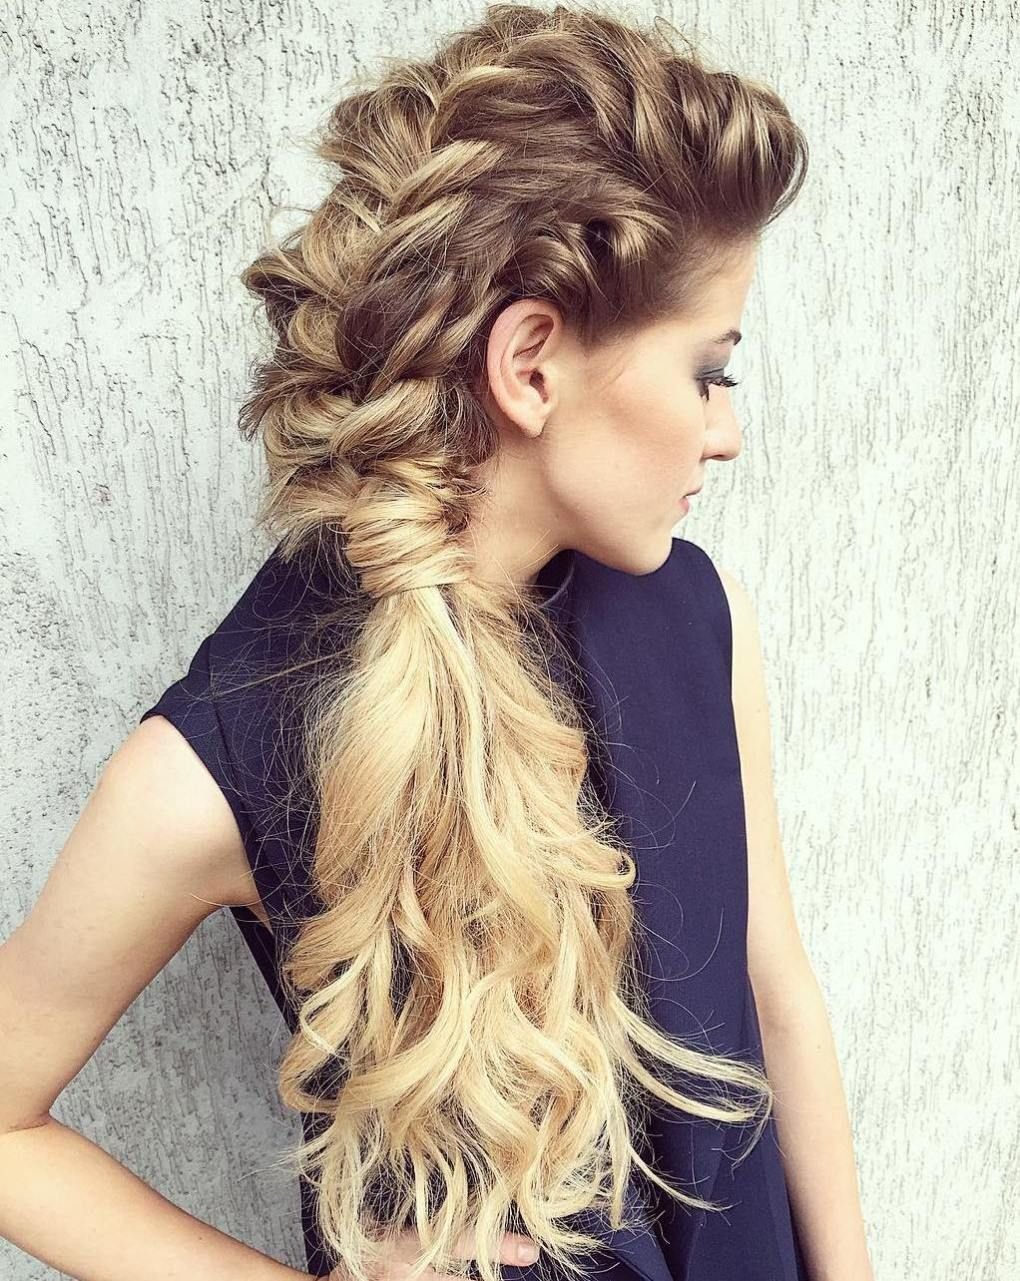 45 Side Hairstyles for Prom to Please Any Taste | Side ...